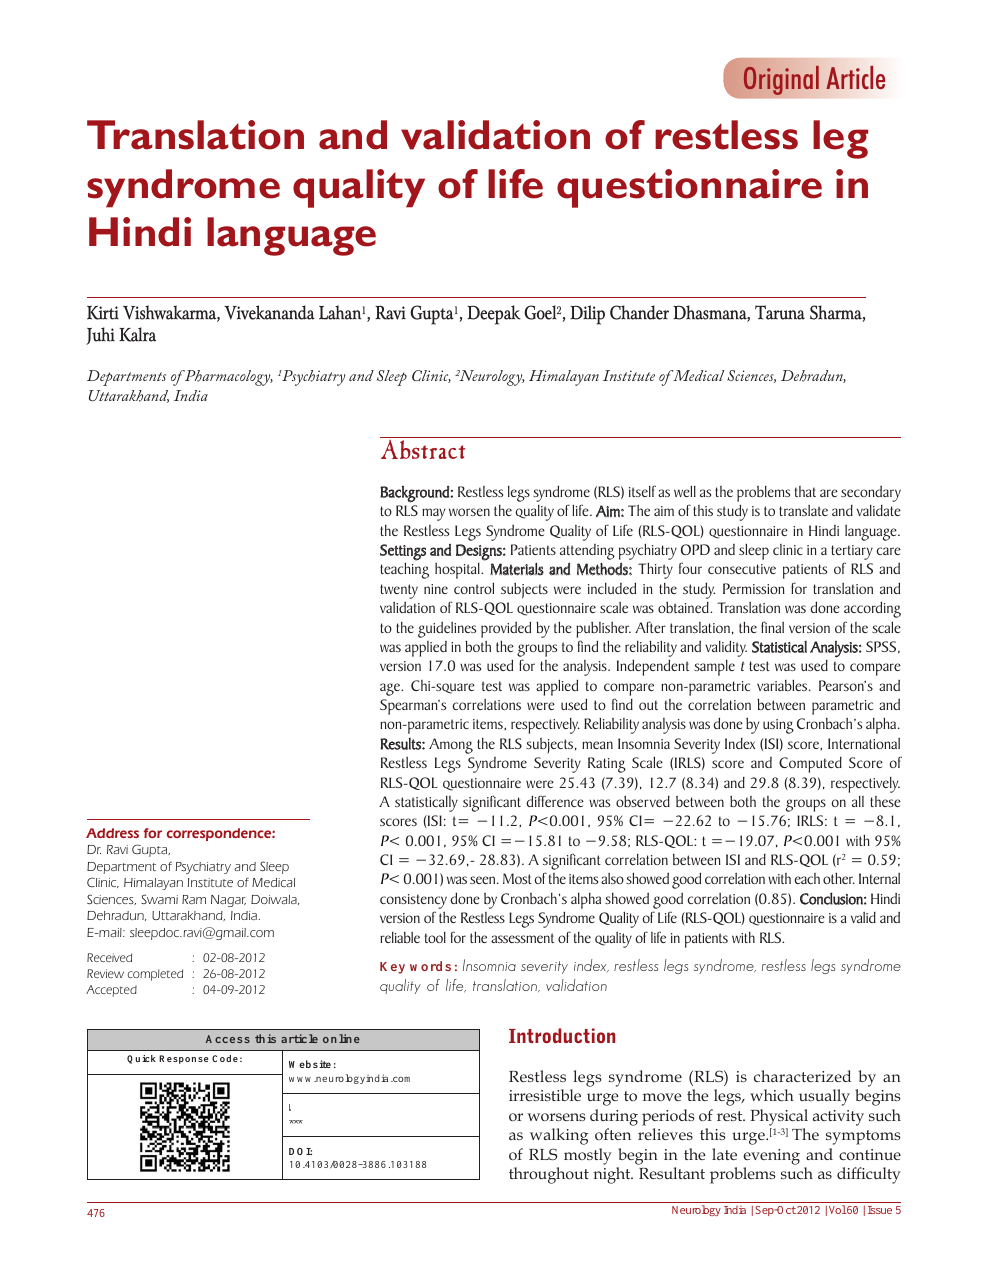 Translation and validation of restless leg syndrome quality of life